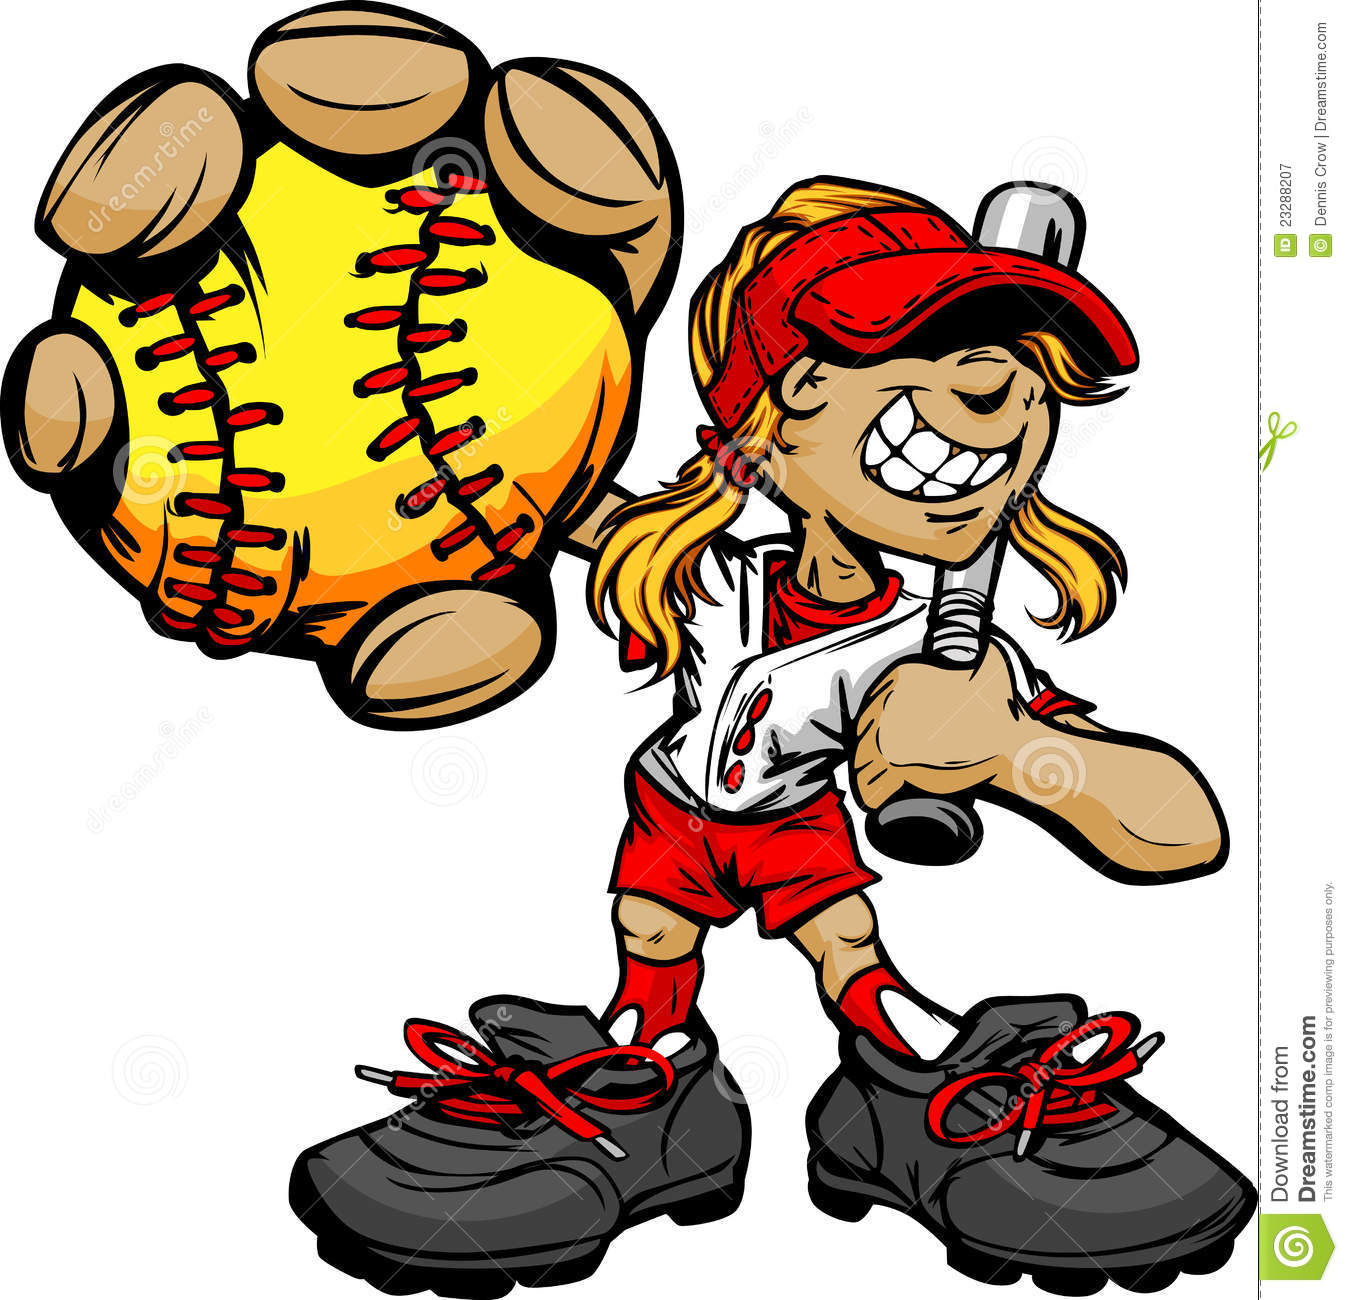 Clip Art Softball Clipart Free softball stock illustrations 2314 kid player holding baseball and bat royalty free photography